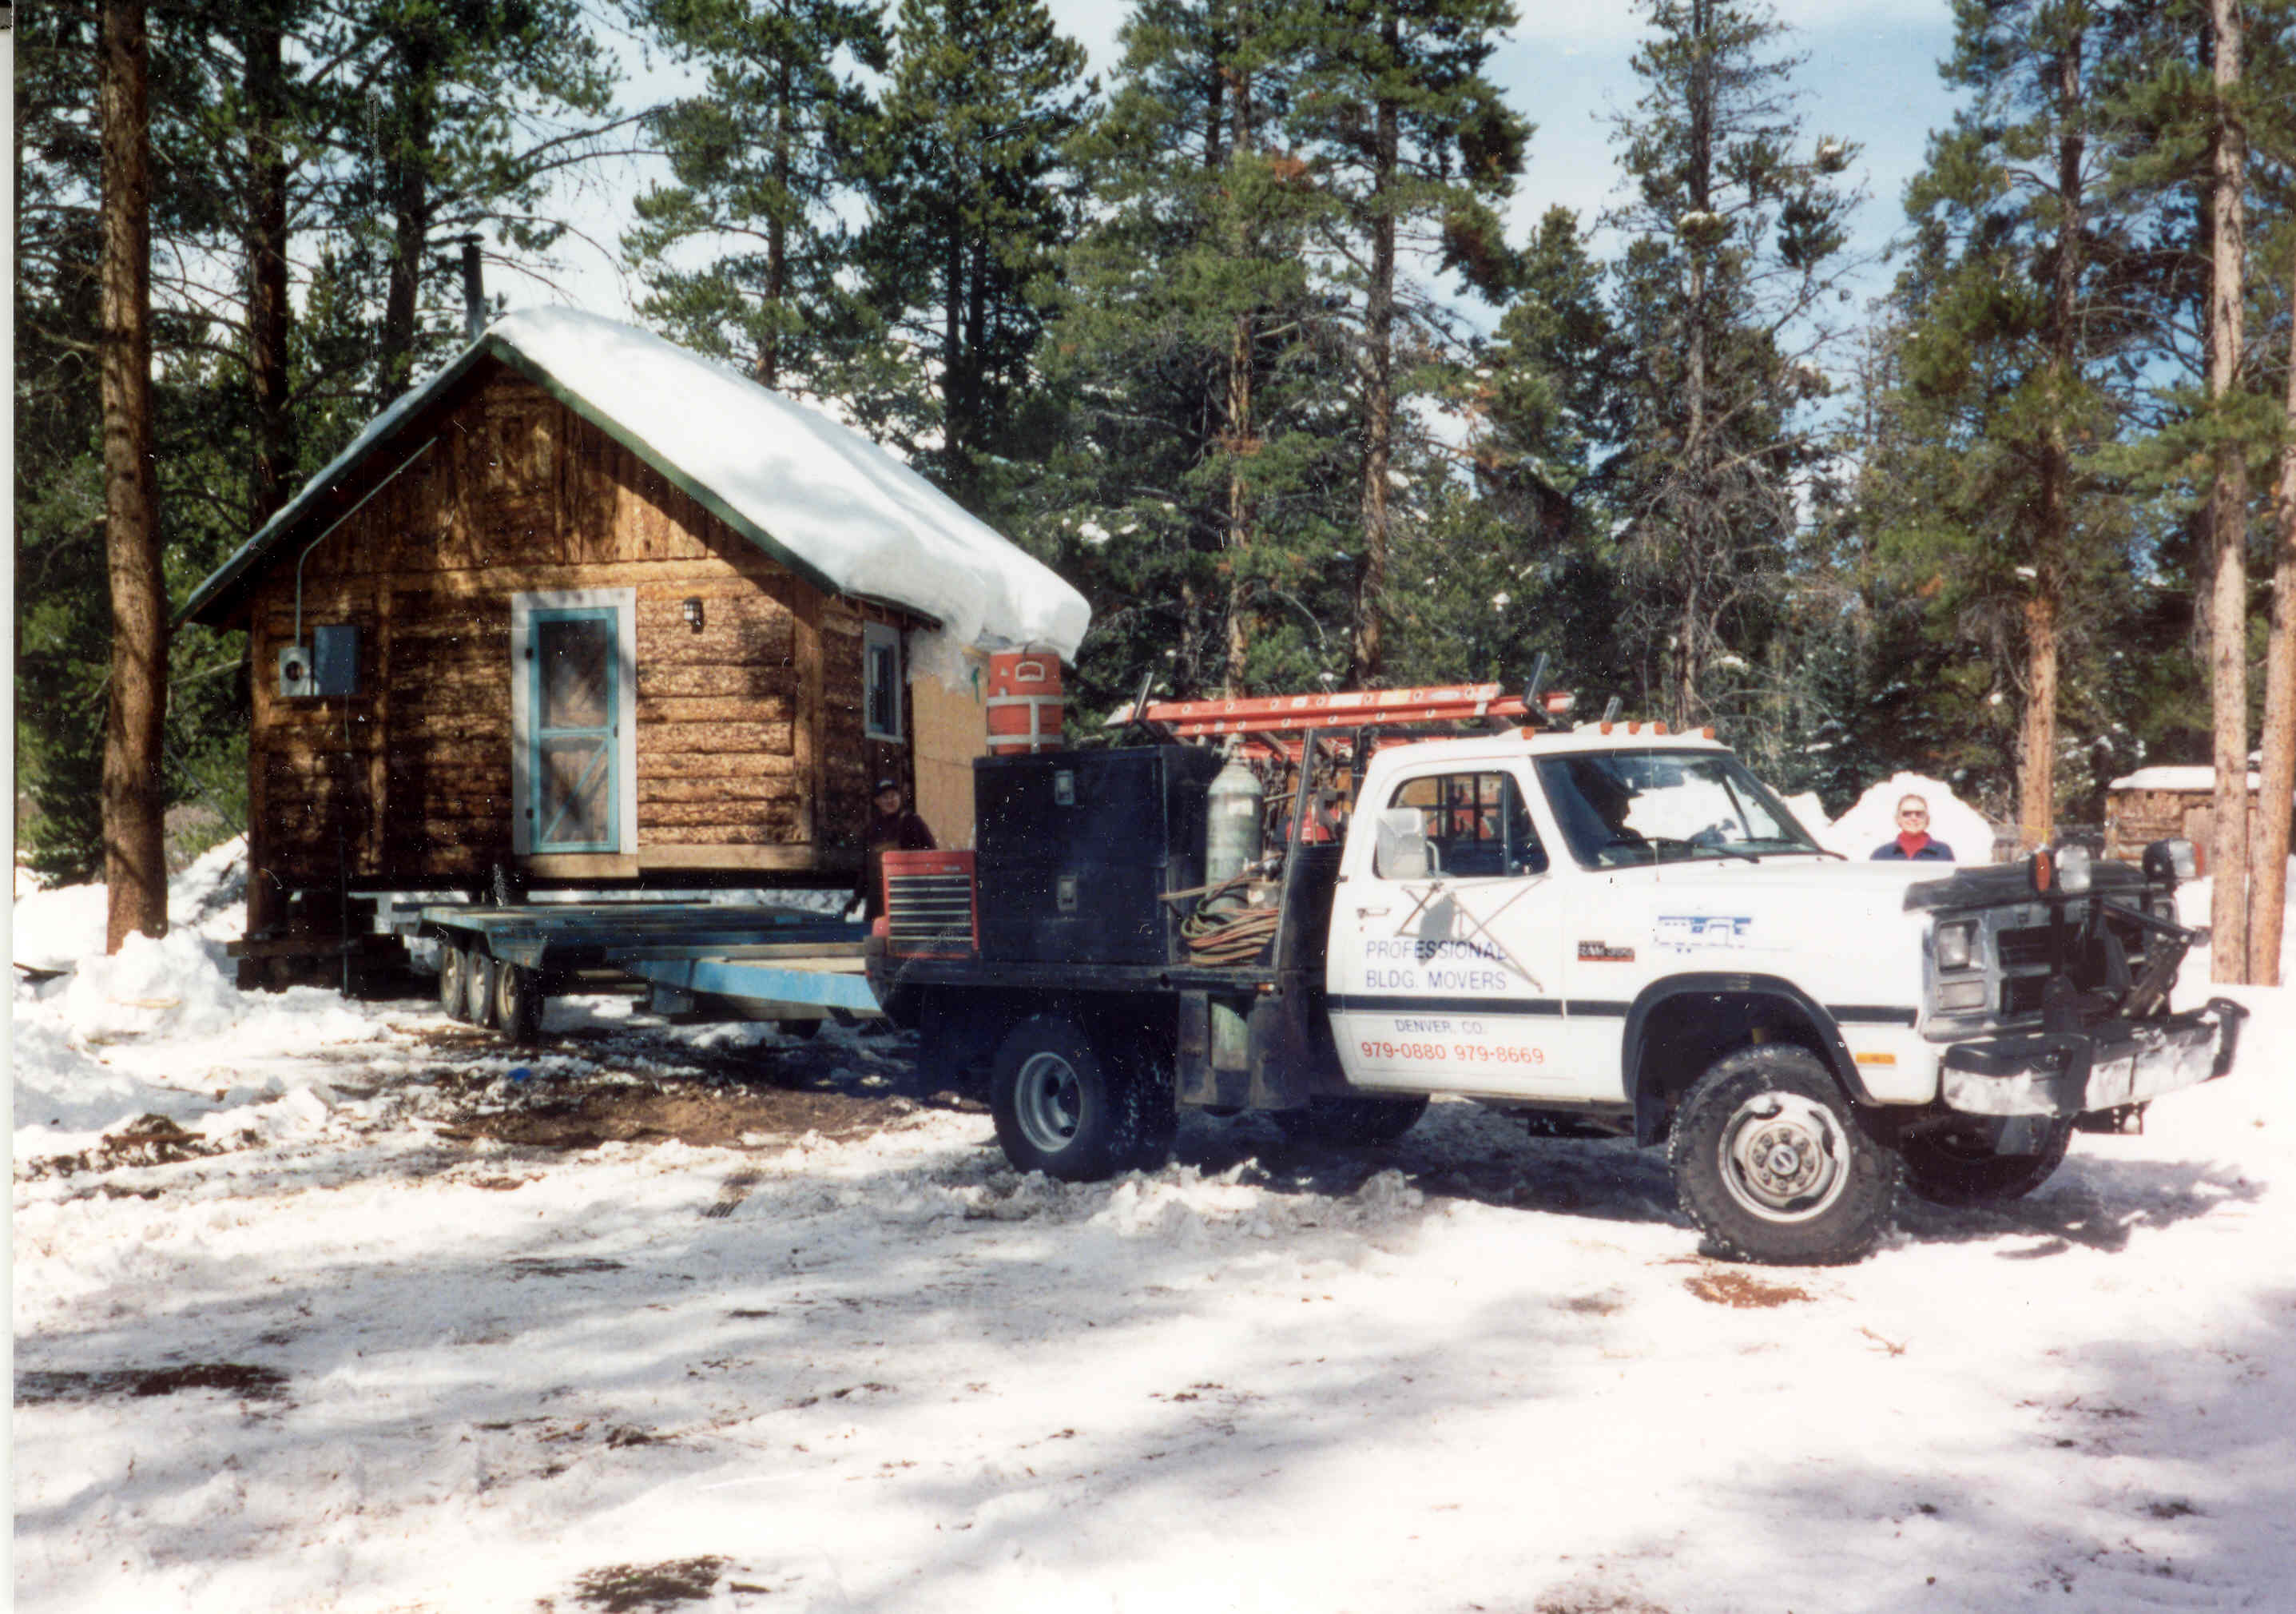 Relocation of the Niemoth Cabin in 1996, from Bill's Ranch Neighborhood to the Frisco Historic Park. Moved by Professional Building Movers of Denver.